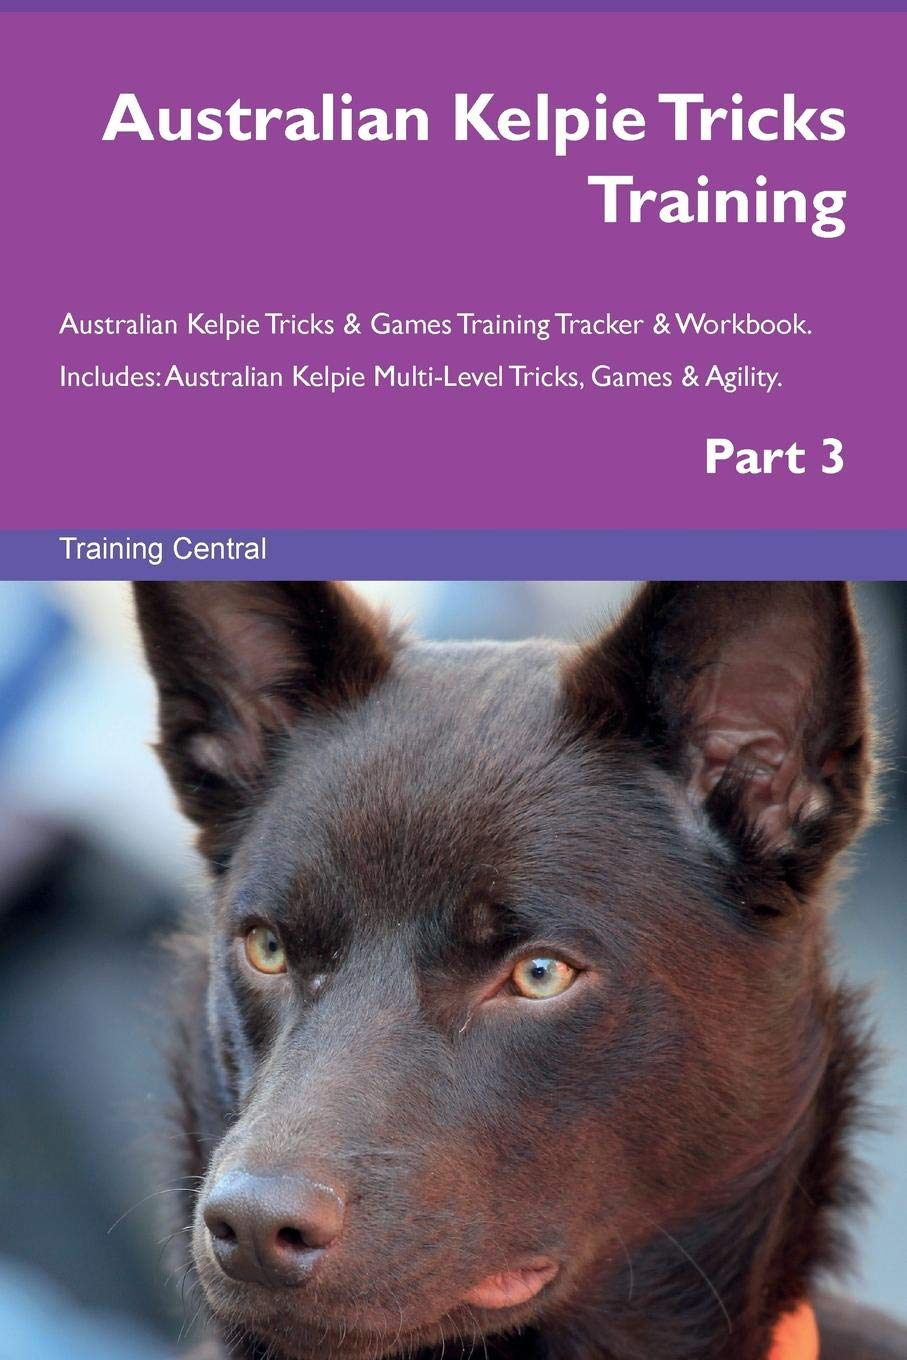 Download Australian Kelpie Tricks Training Australian Kelpie Tricks & Games Training Tracker & Workbook.  Includes: Australian Kelpie Multi-Level Tricks, Games & Agility. Part 3 ebook